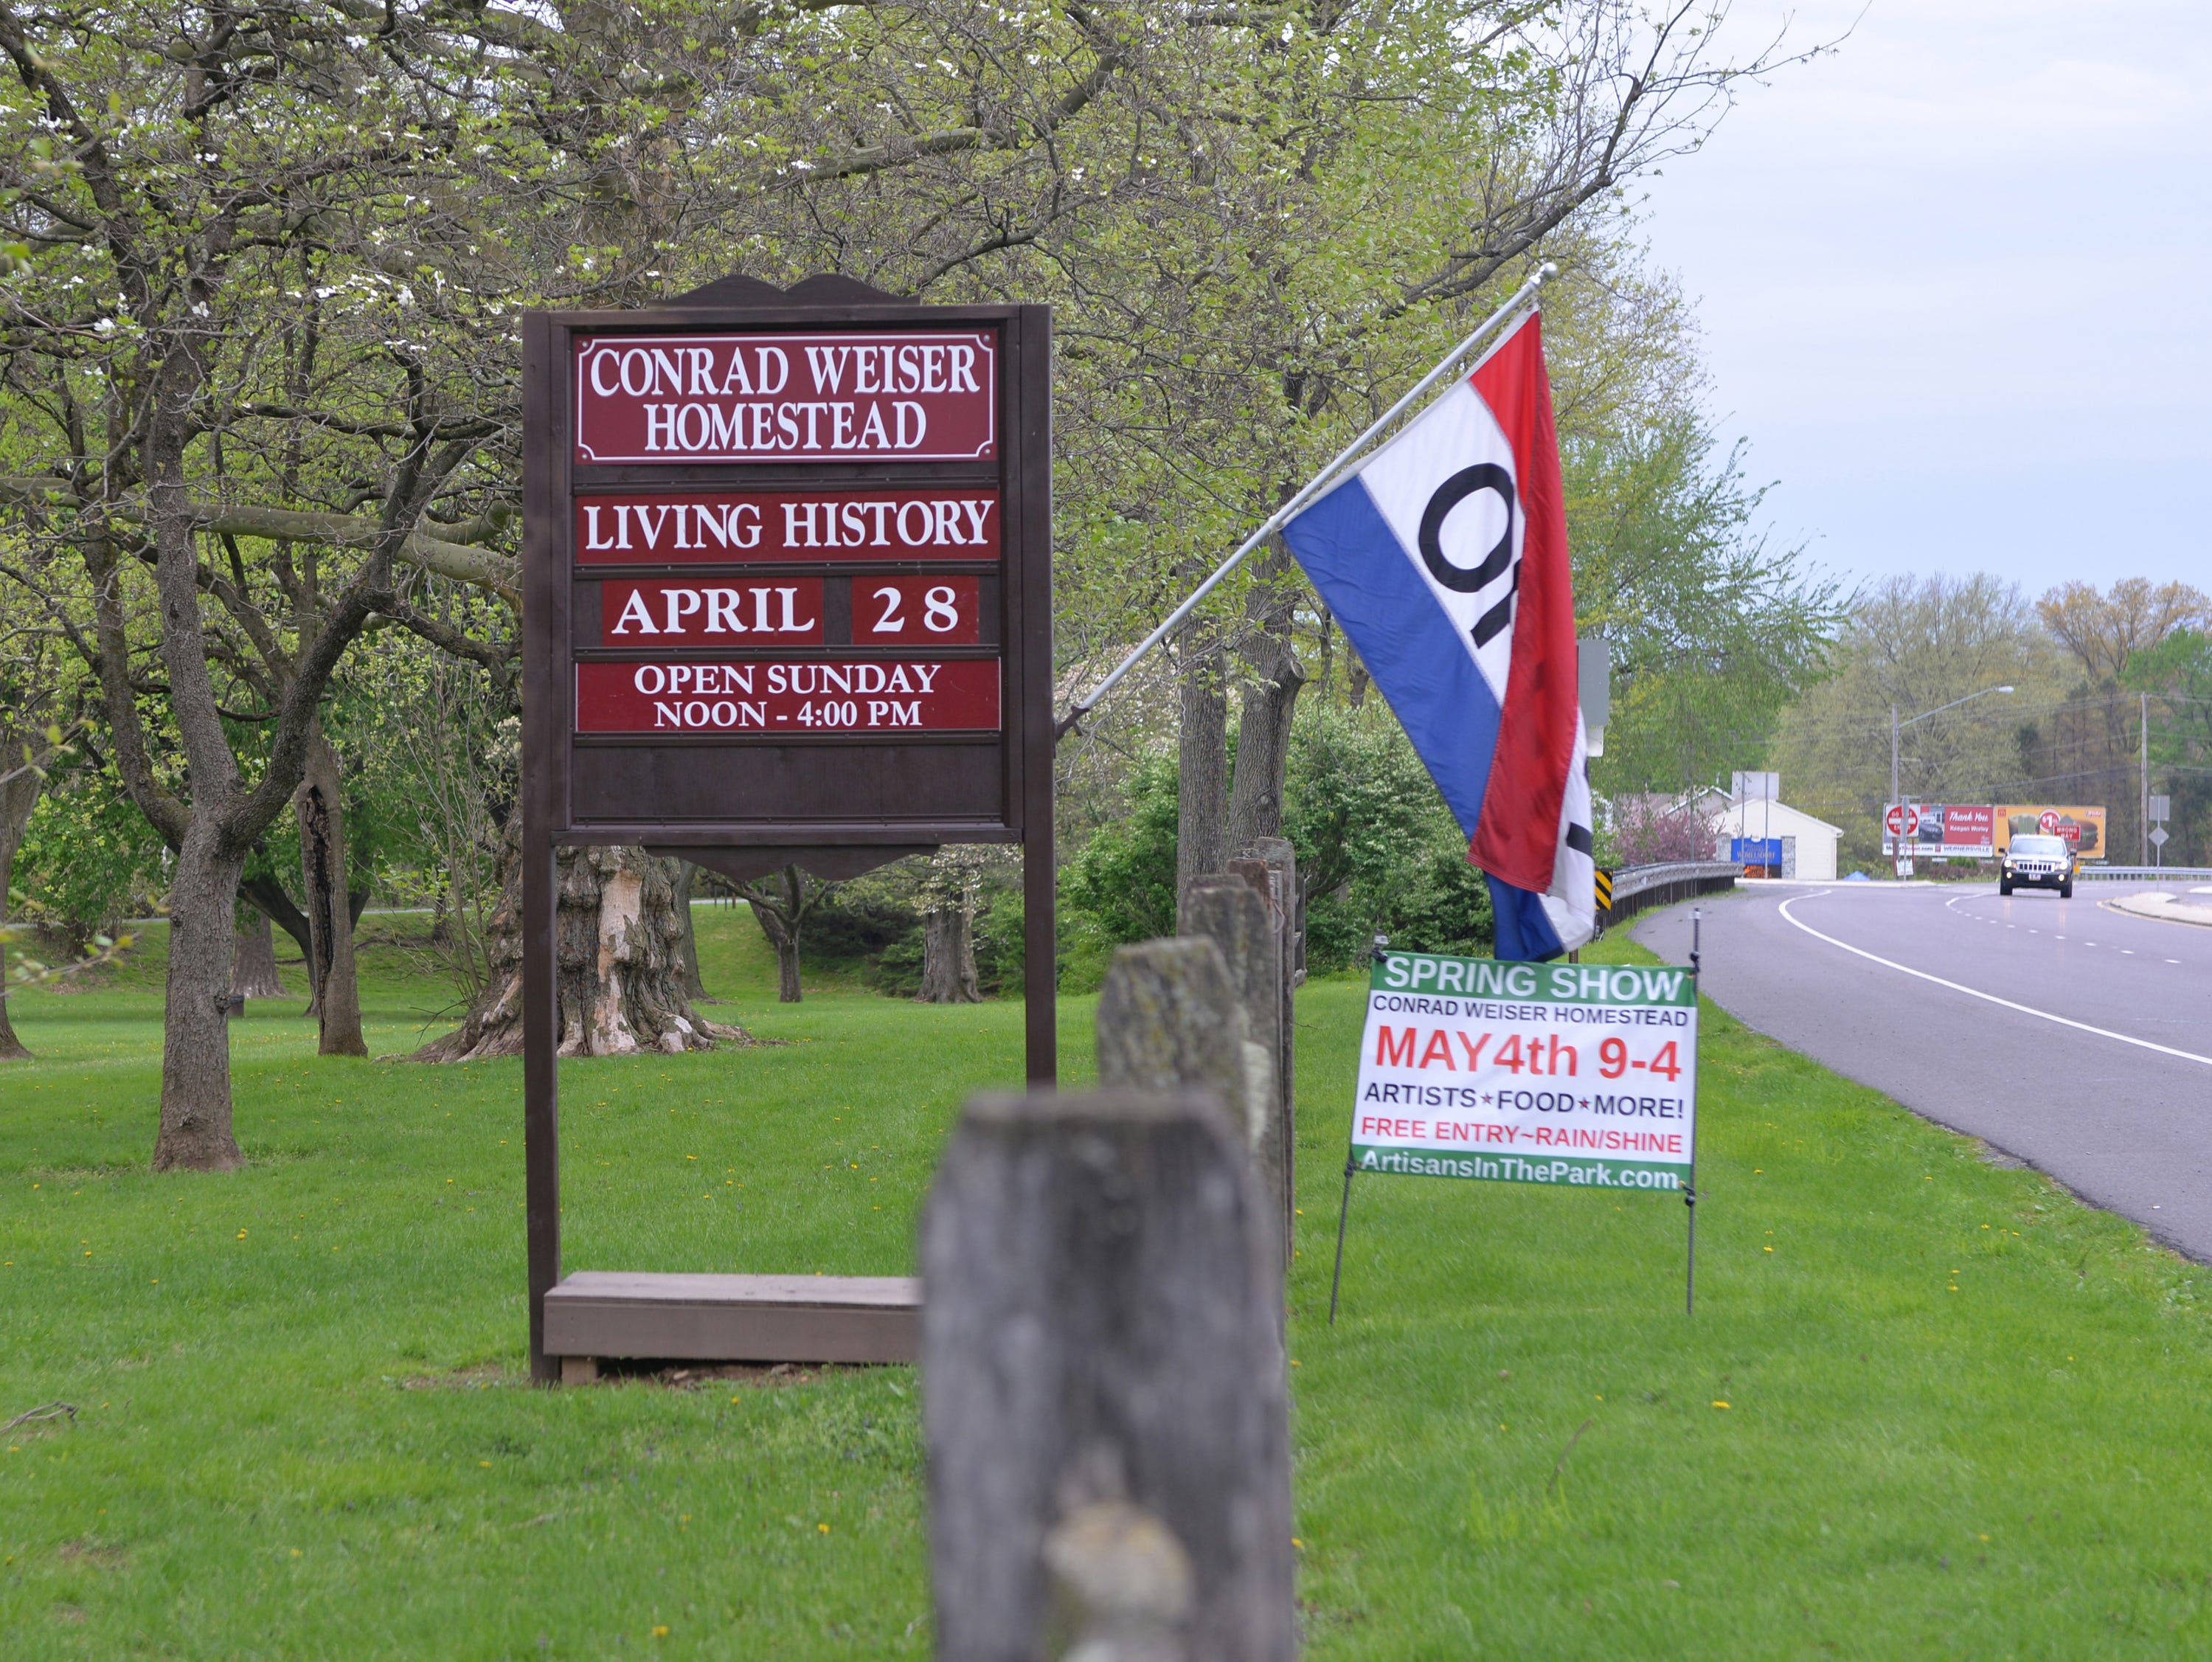 Making Sense of History, a special living history program that focused on the senses, was held at The Conrad Weiser Homestead at Womelsdorf, Pa on Sunday, April 28, 2019.